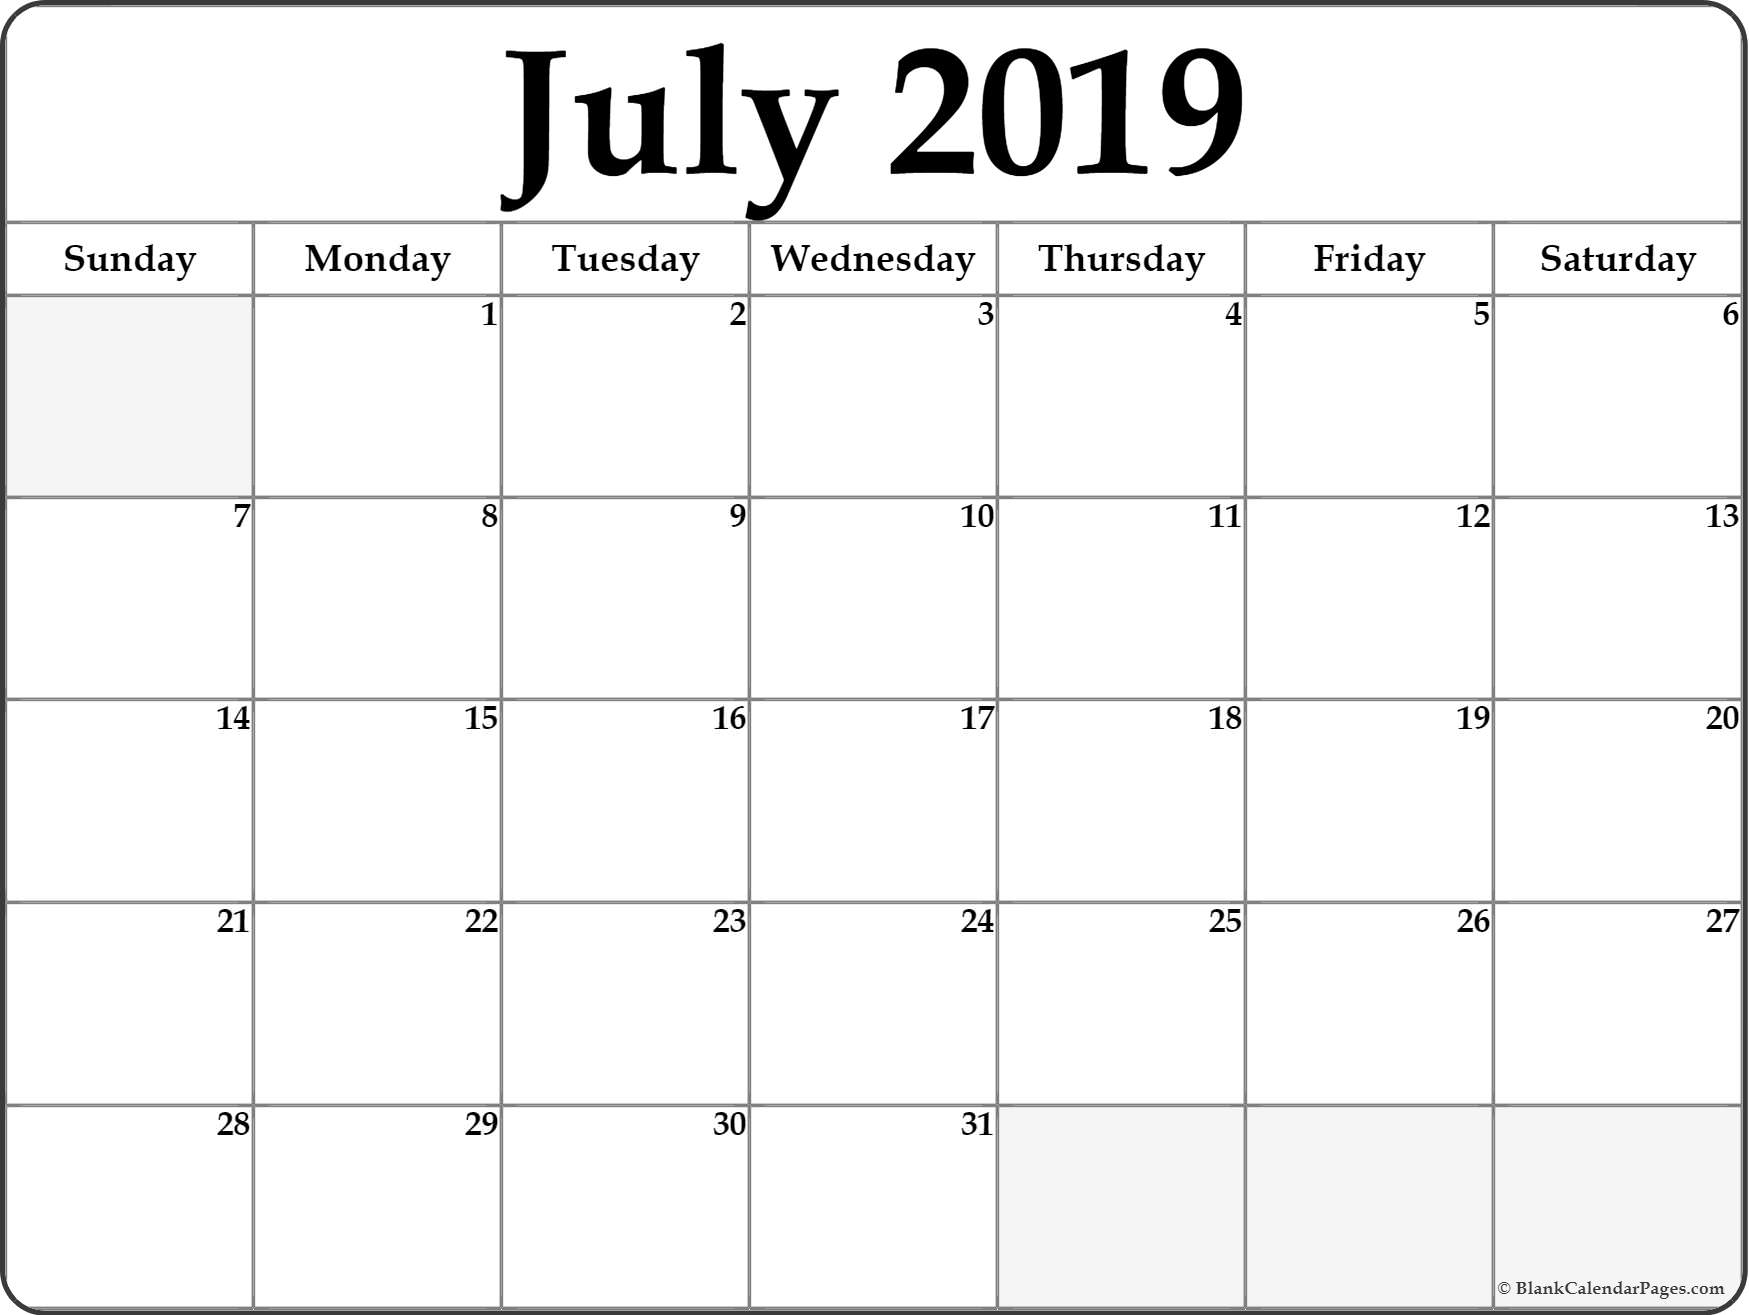 July 2019 Calendar | Free Printable Monthly Calendars within Blank July Monthly Calendar